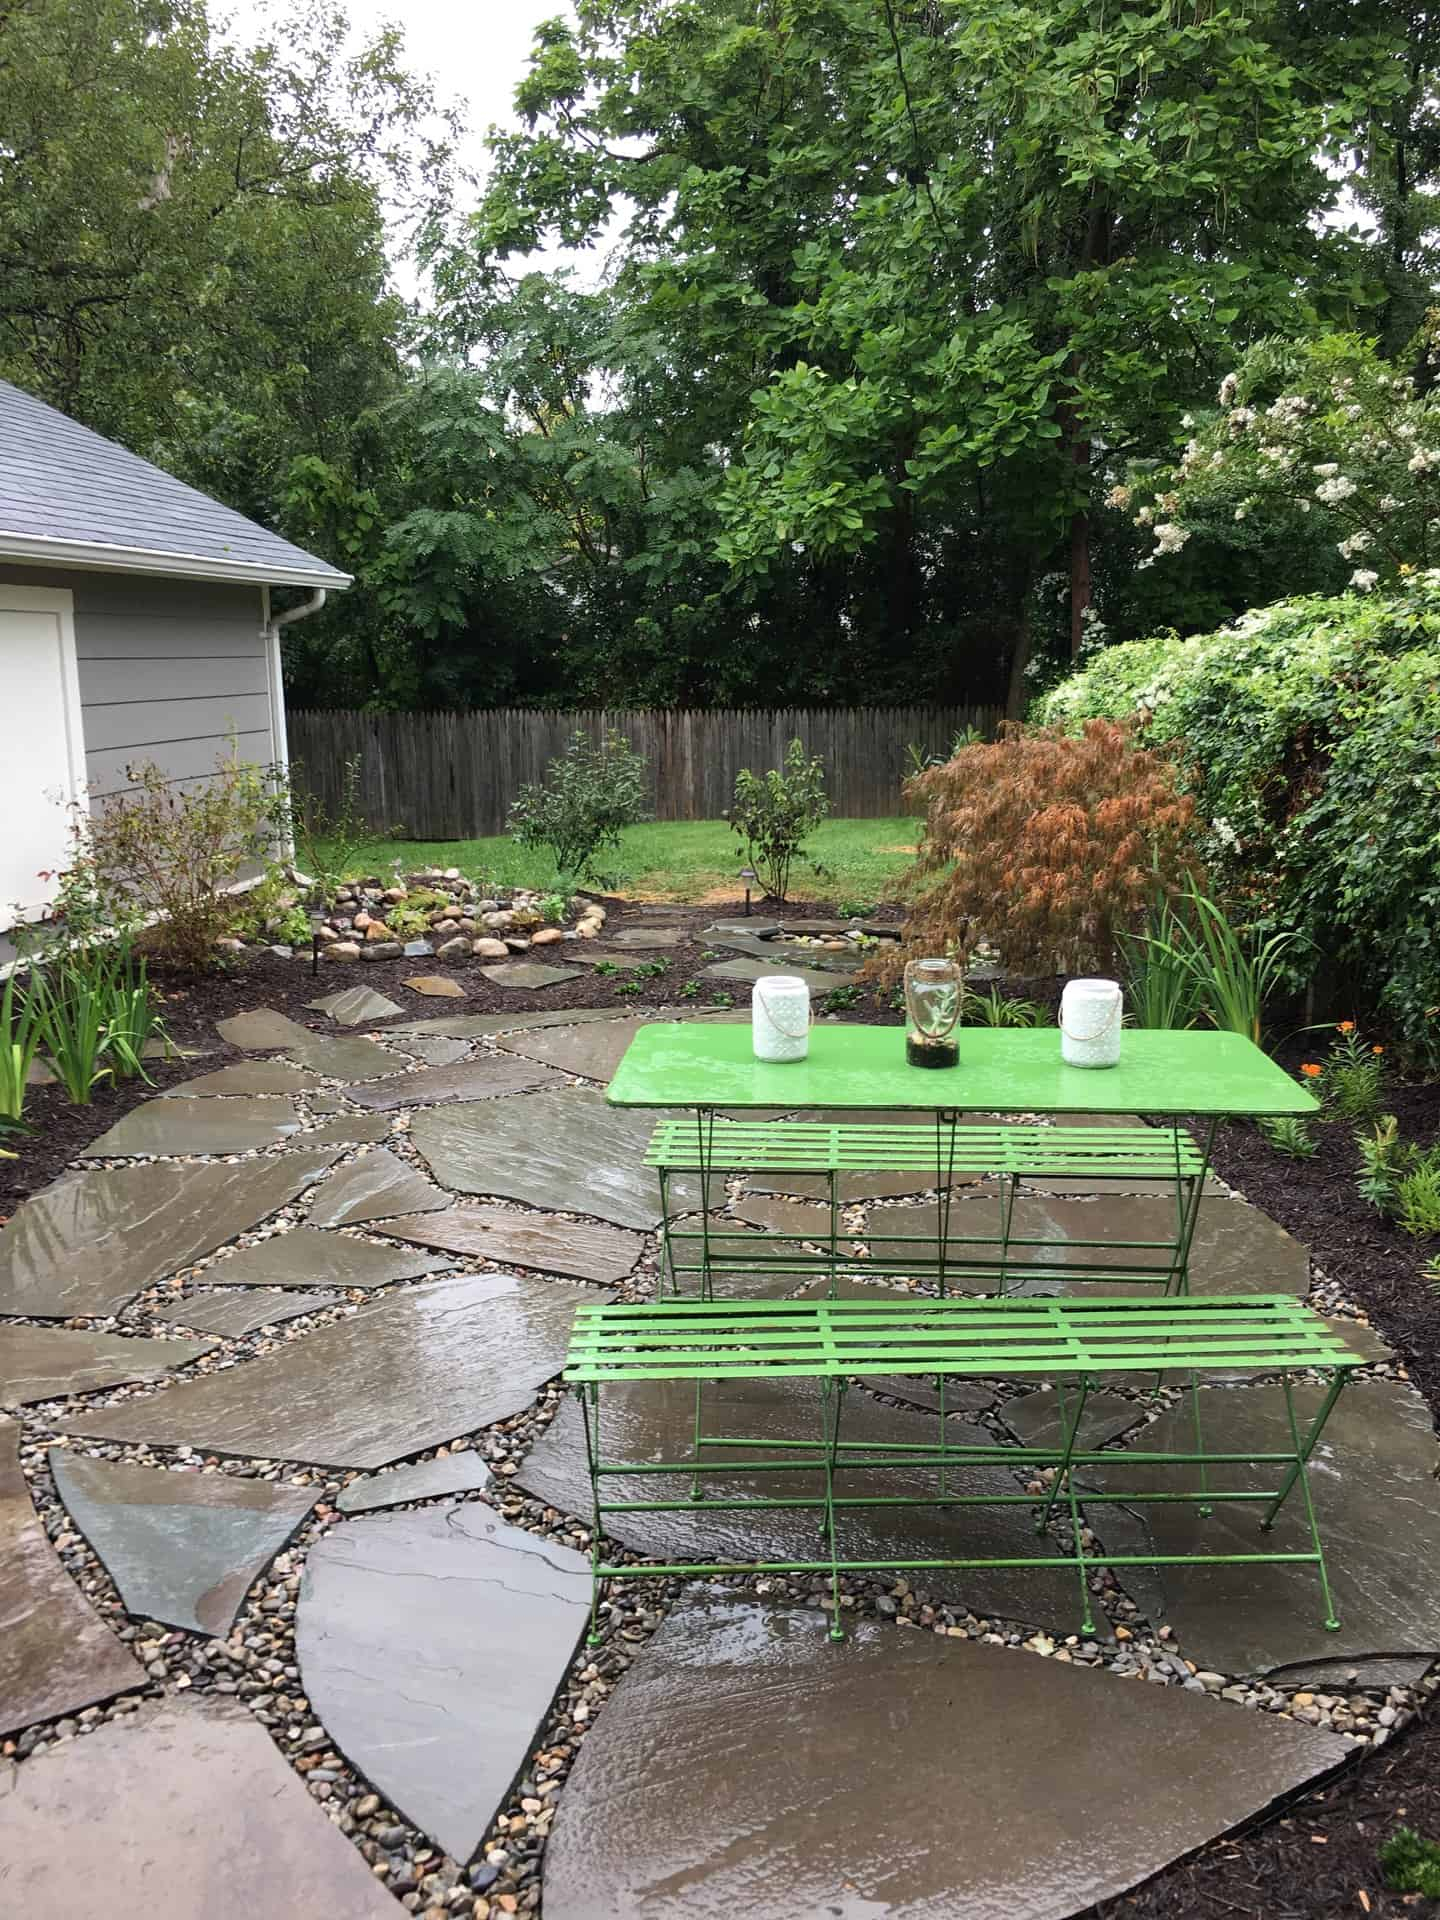 How Much Does Landscaping Cost Landscape Design Installation regarding How Much Does It Cost To Landscape A Backyard